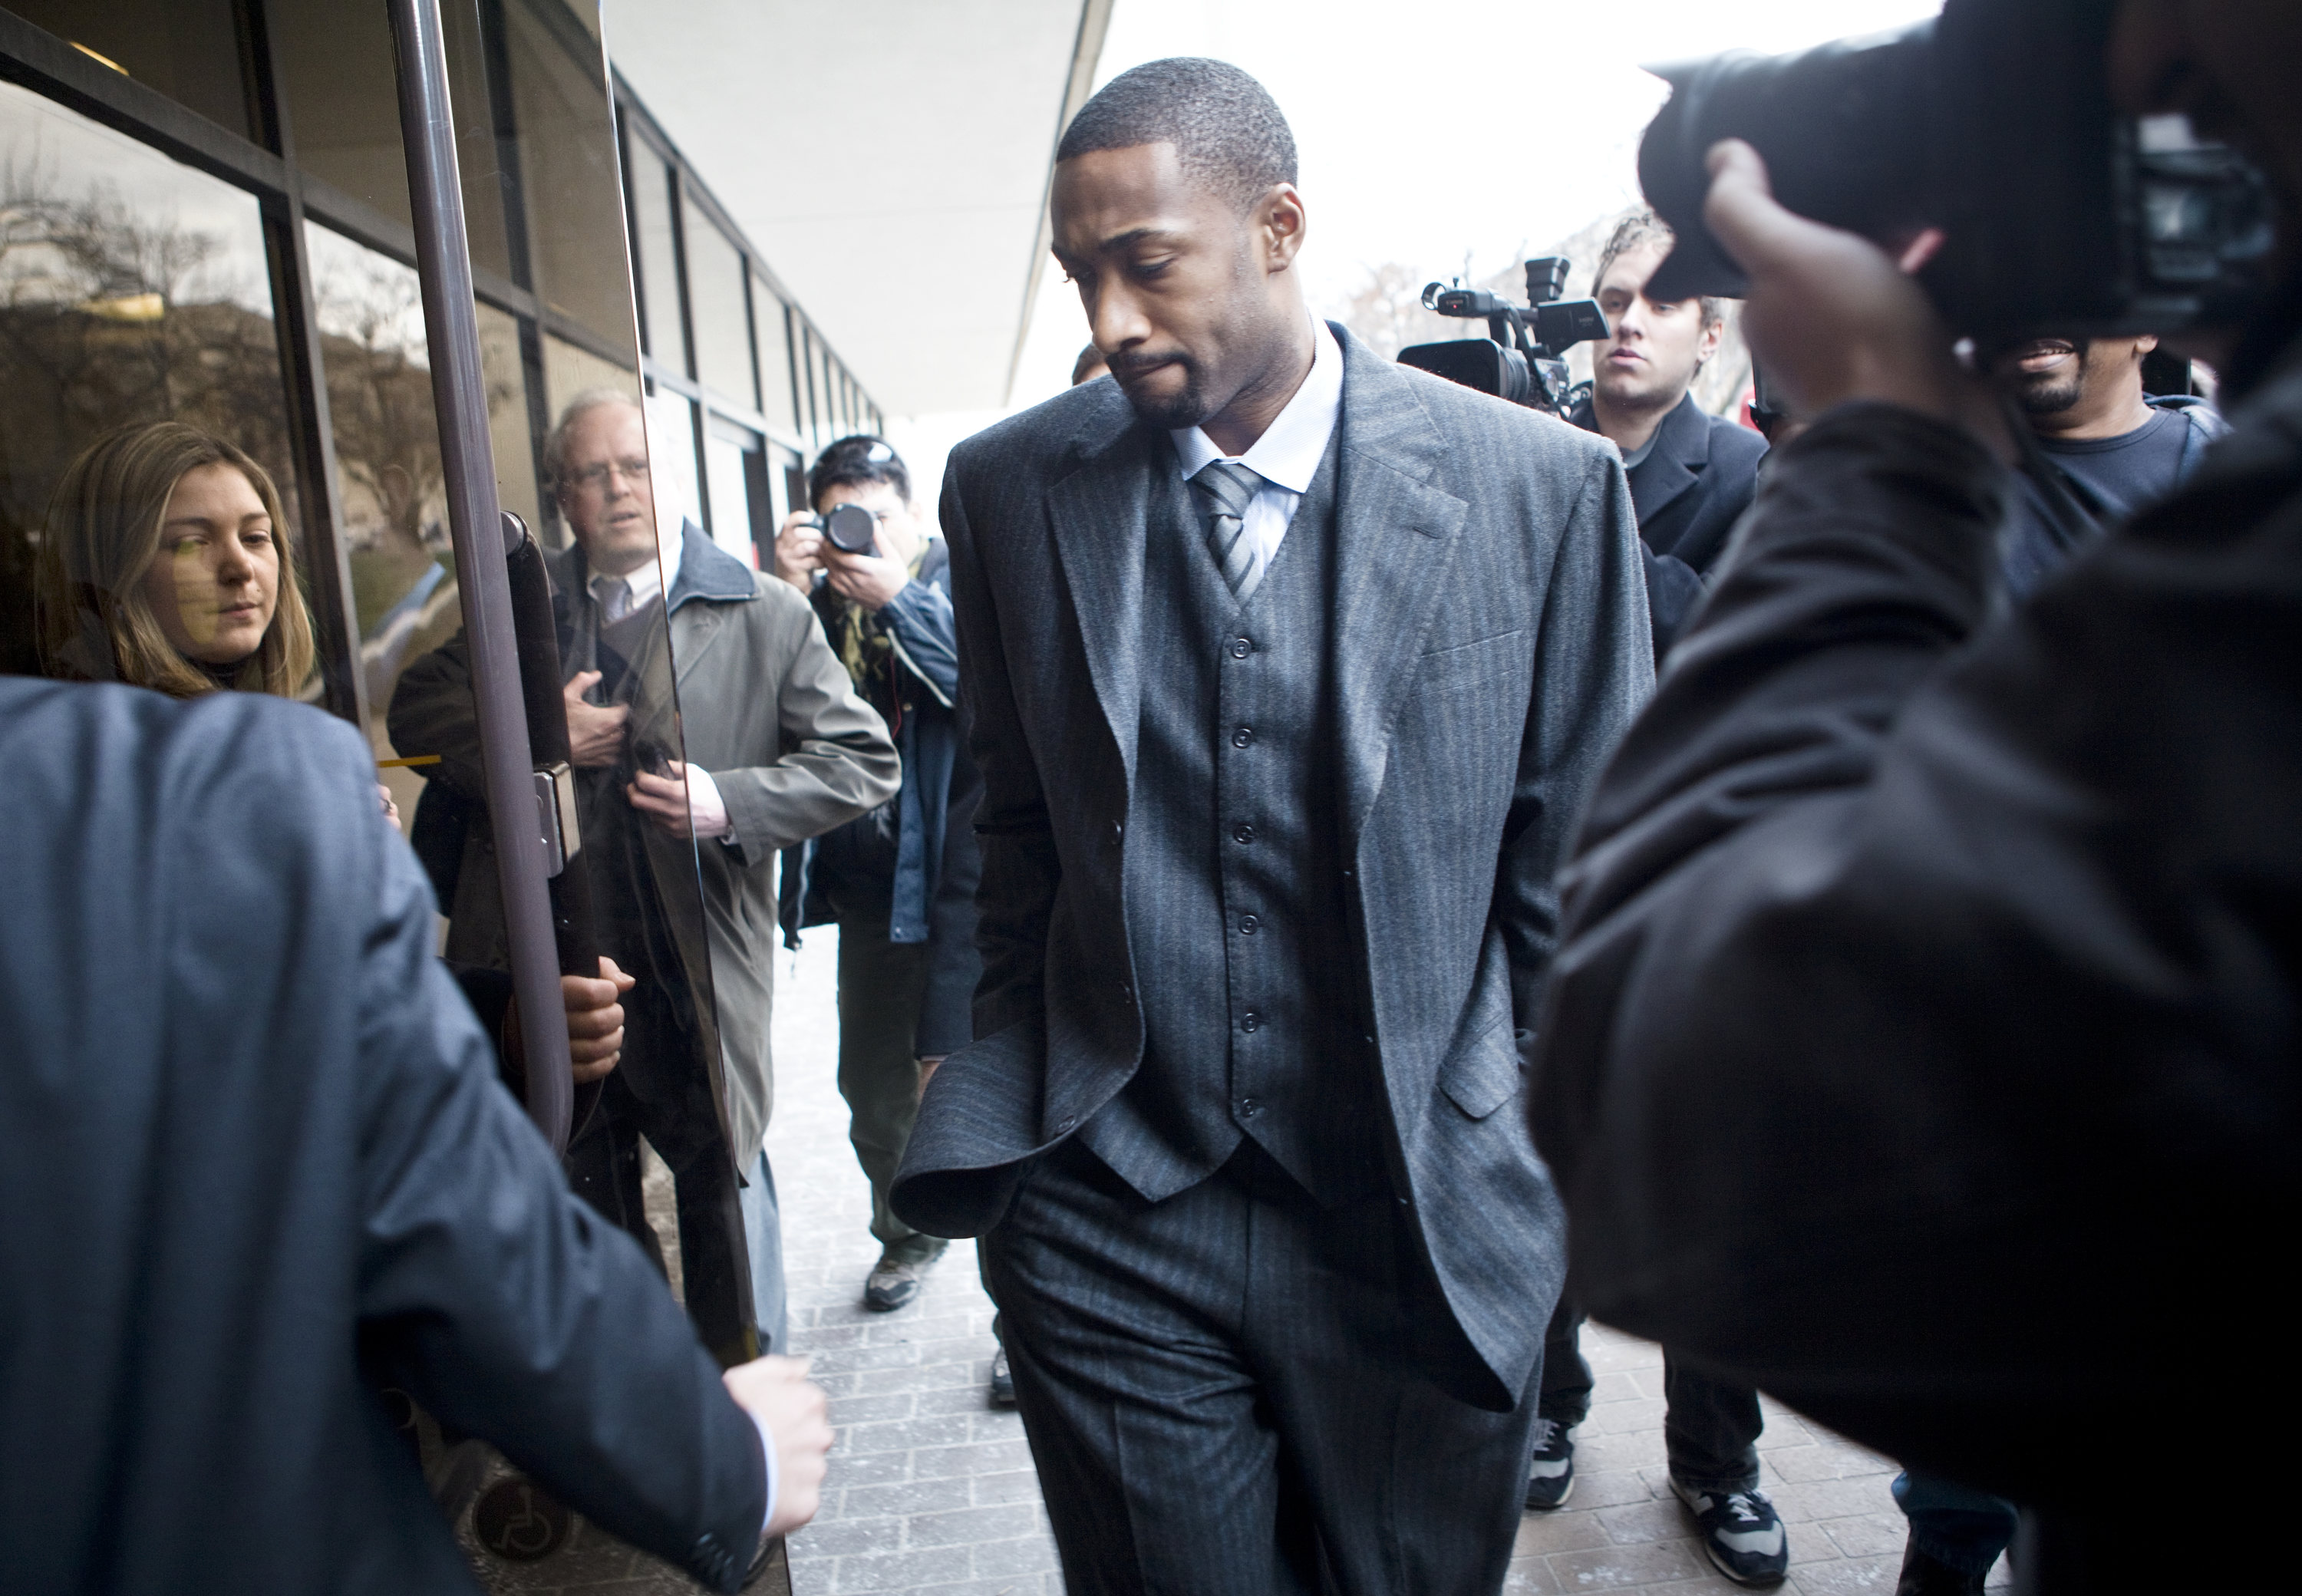 WASHINGTON -  JANUARY 15:  NBA player Gilbert Arenas arrives at District of Columbia Court January 15, 2010 in Washington, DC.  The Washington Wizards star was to appear in court to answer to felony charges for bringing gun into the Wizards locker room.